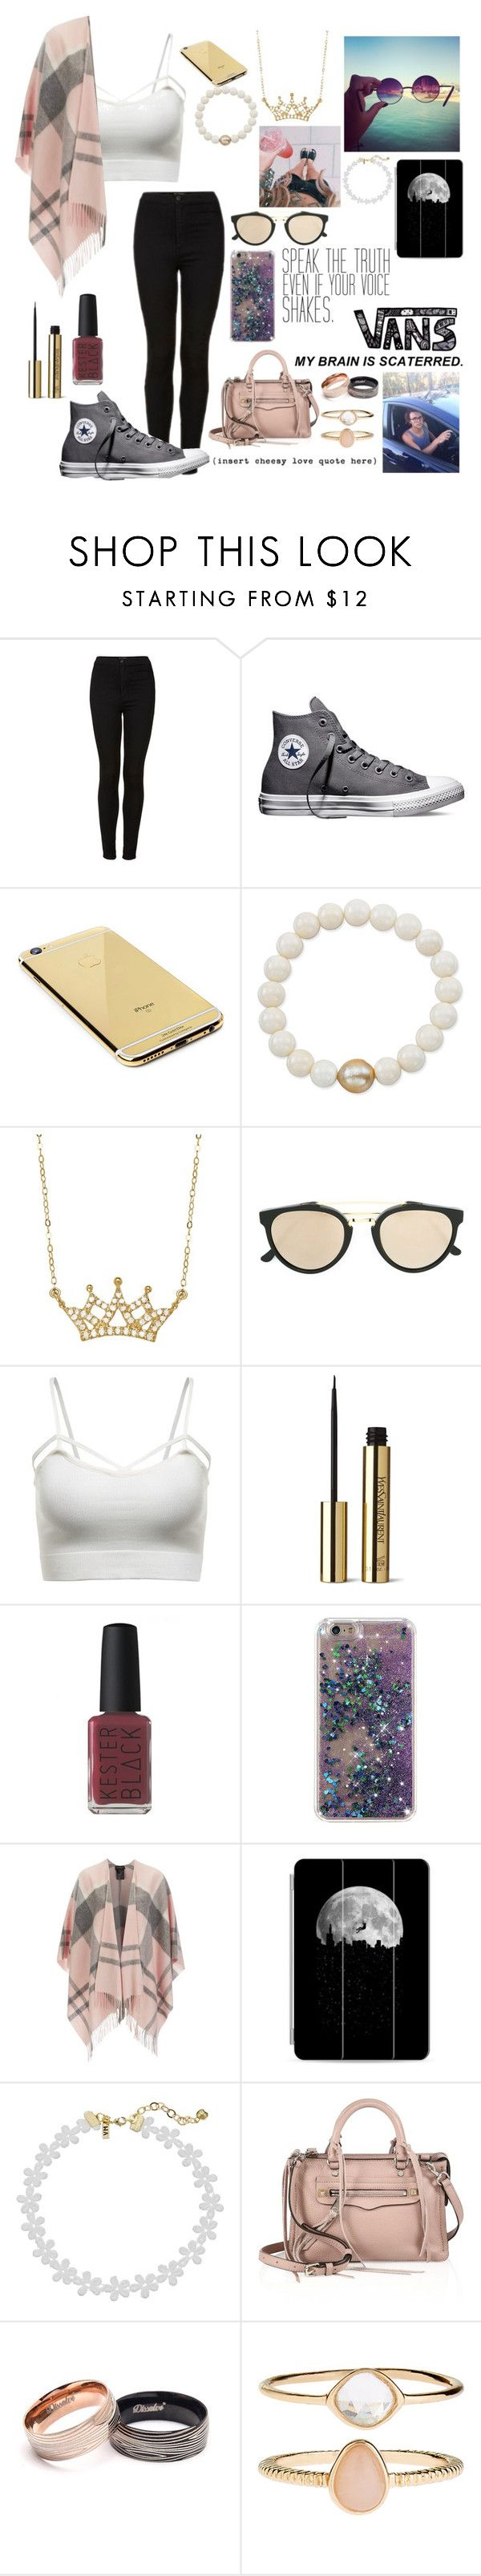 """""""&-- R E S P E C T Find out what it means to me --&"""" by batman-lover-13 ❤ liked on Polyvore featuring Topshop, Converse, Goldgenie, Anne Sisteron, RetroSuperFuture, Yves Saint Laurent, Kester Black, Barbour, Casetify and Vanessa Mooney"""